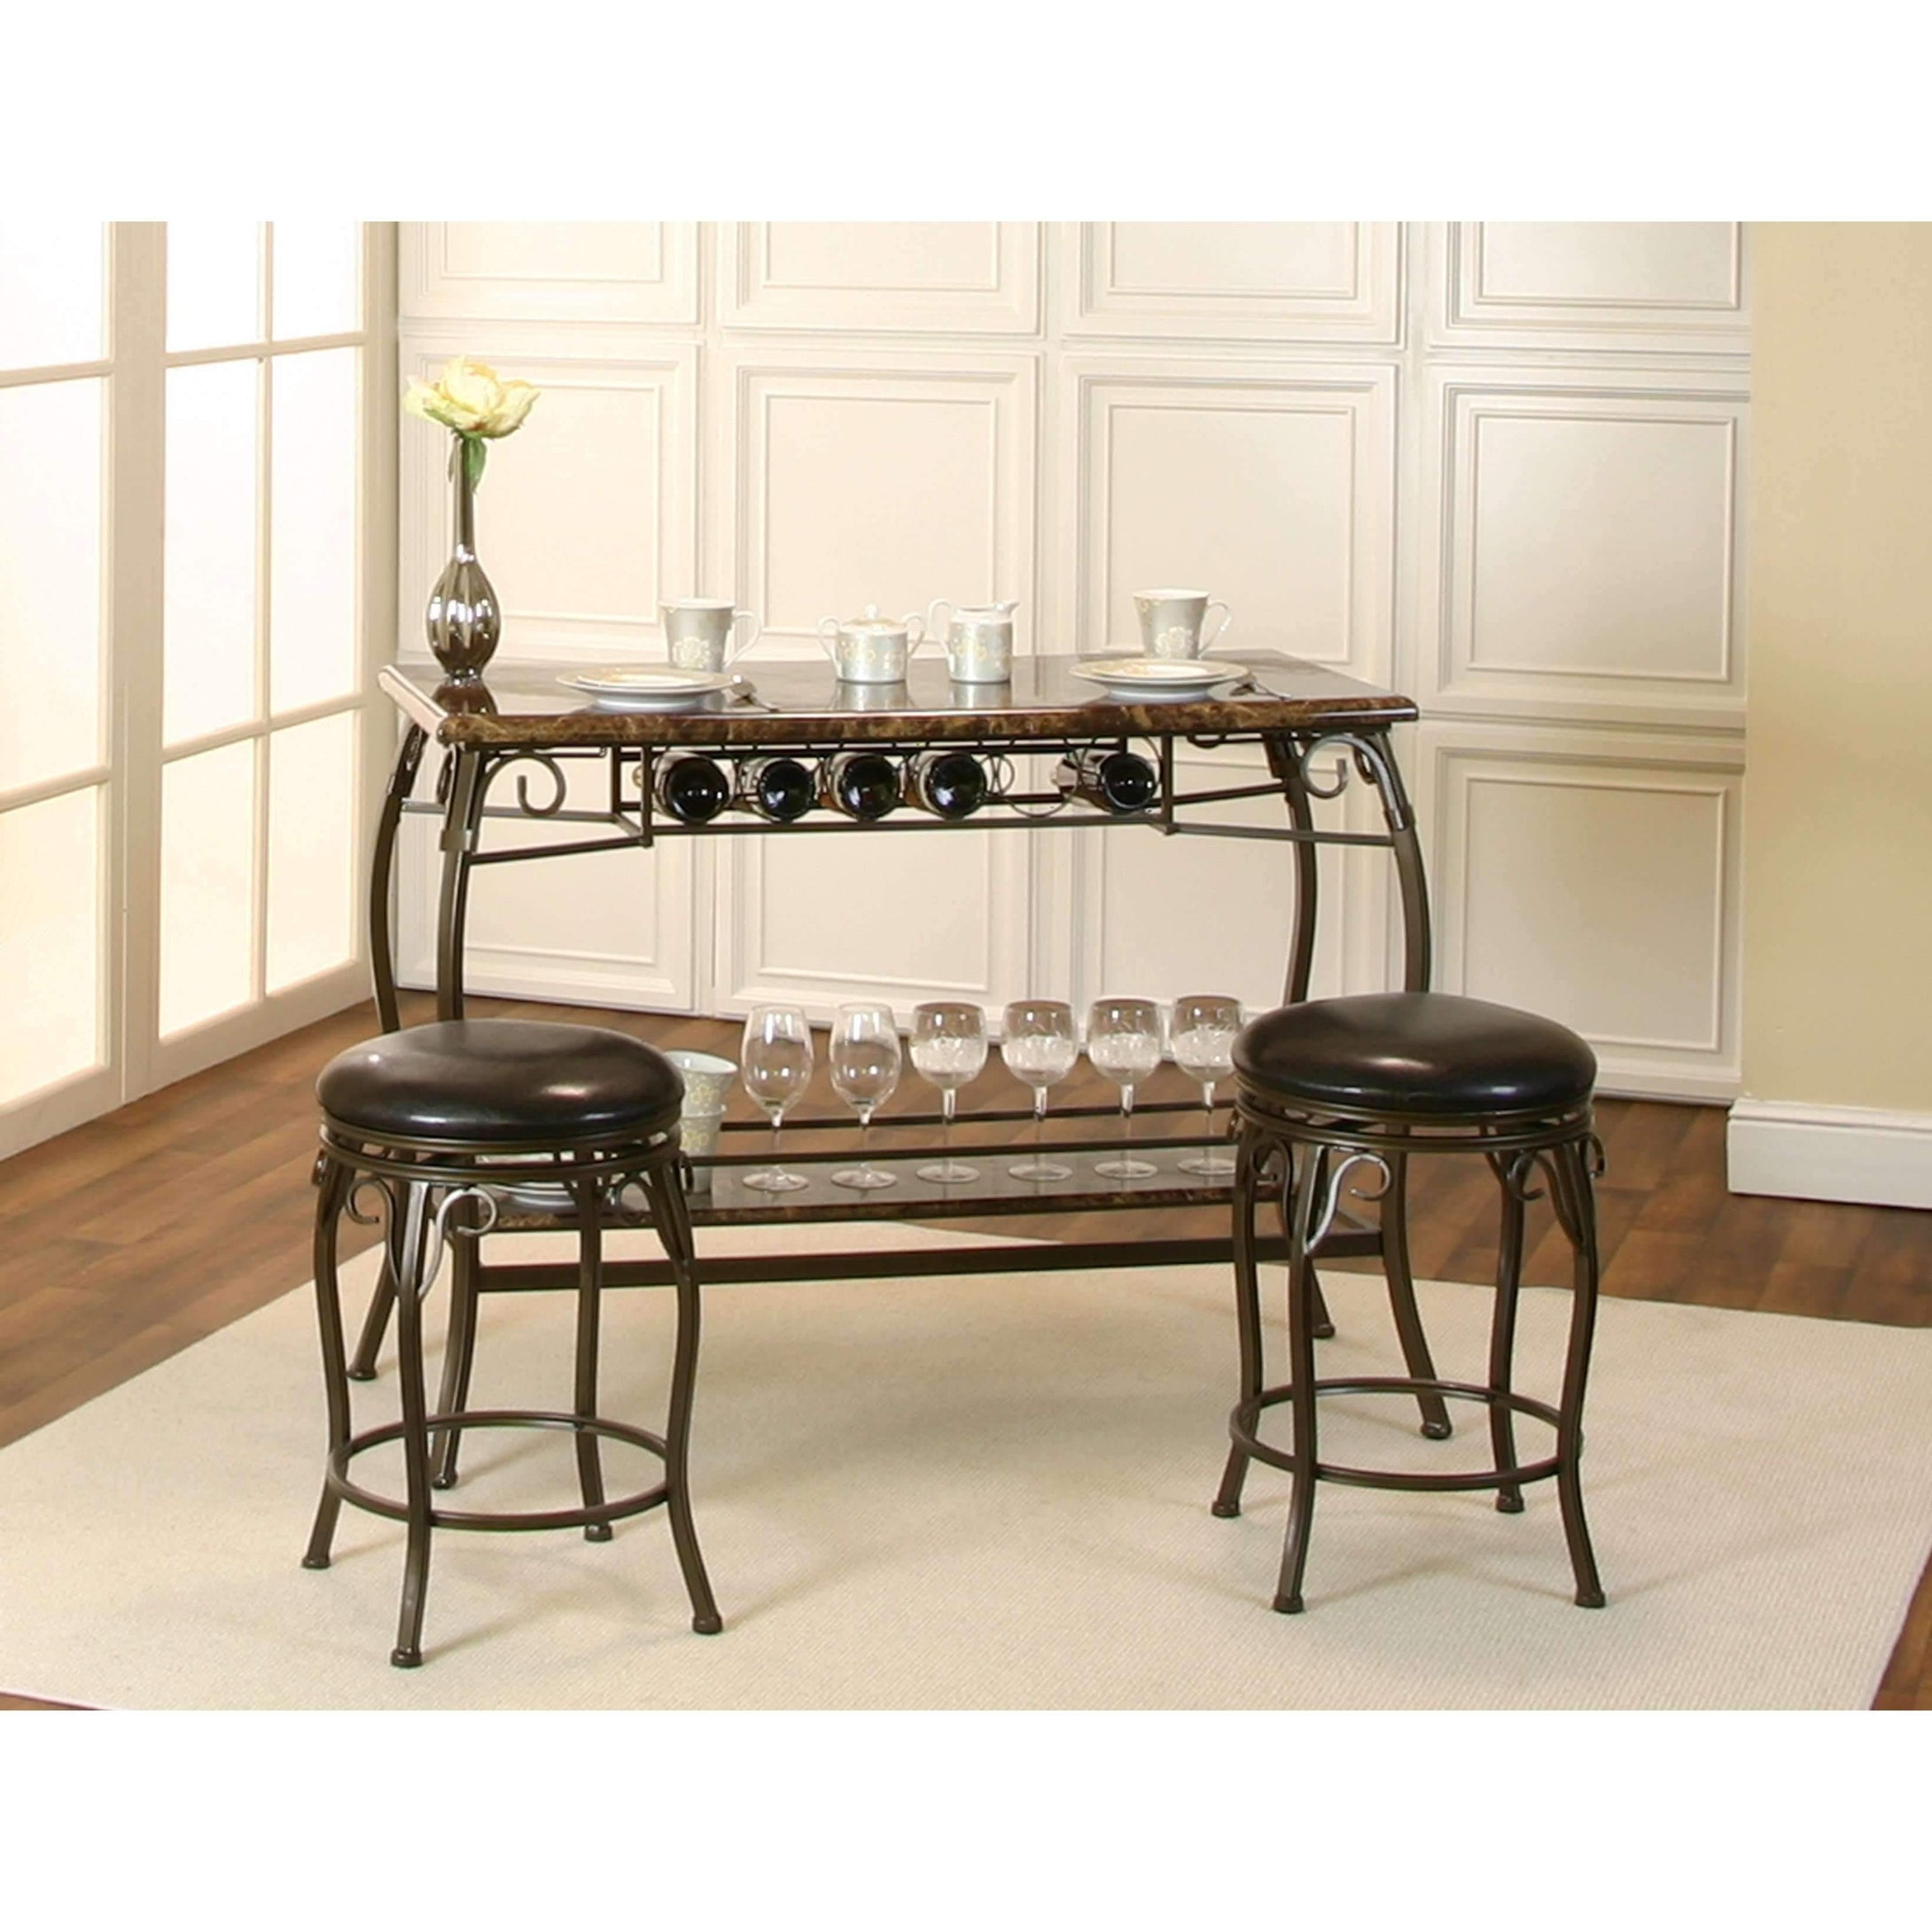 Sunset Trading Tiffany Bar with Built-In Wine Rack-Sunset Trading-Happy Home Bars